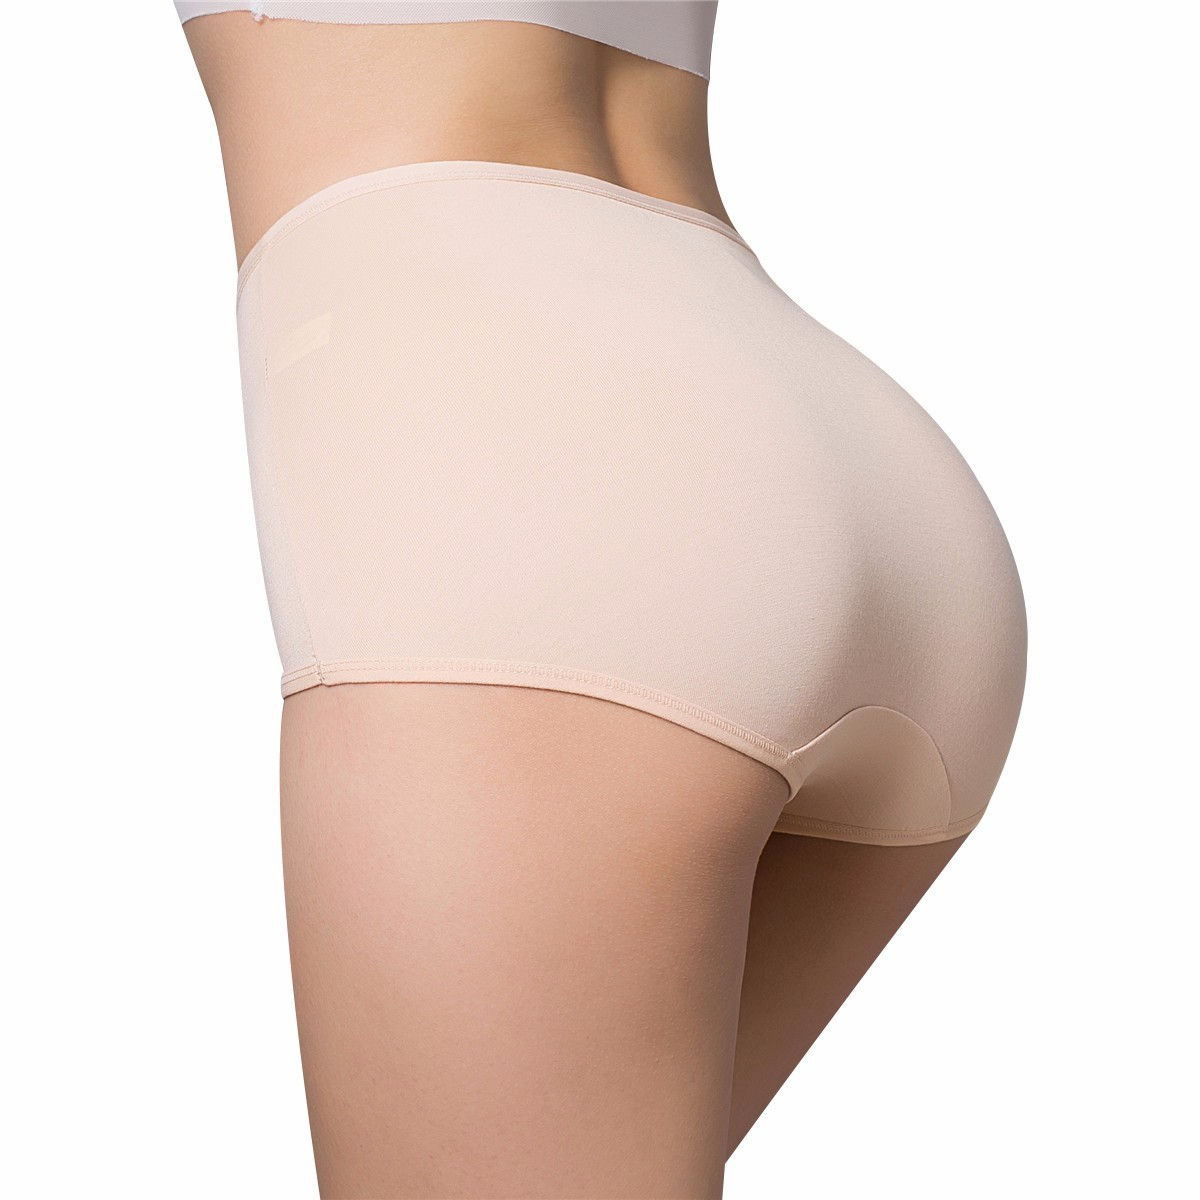 2020winte  Intimates Women's Panties  Ma'am High Waist Triangle Underpants  Non-trace Seamless  Sexy Underwear Natural Briefs